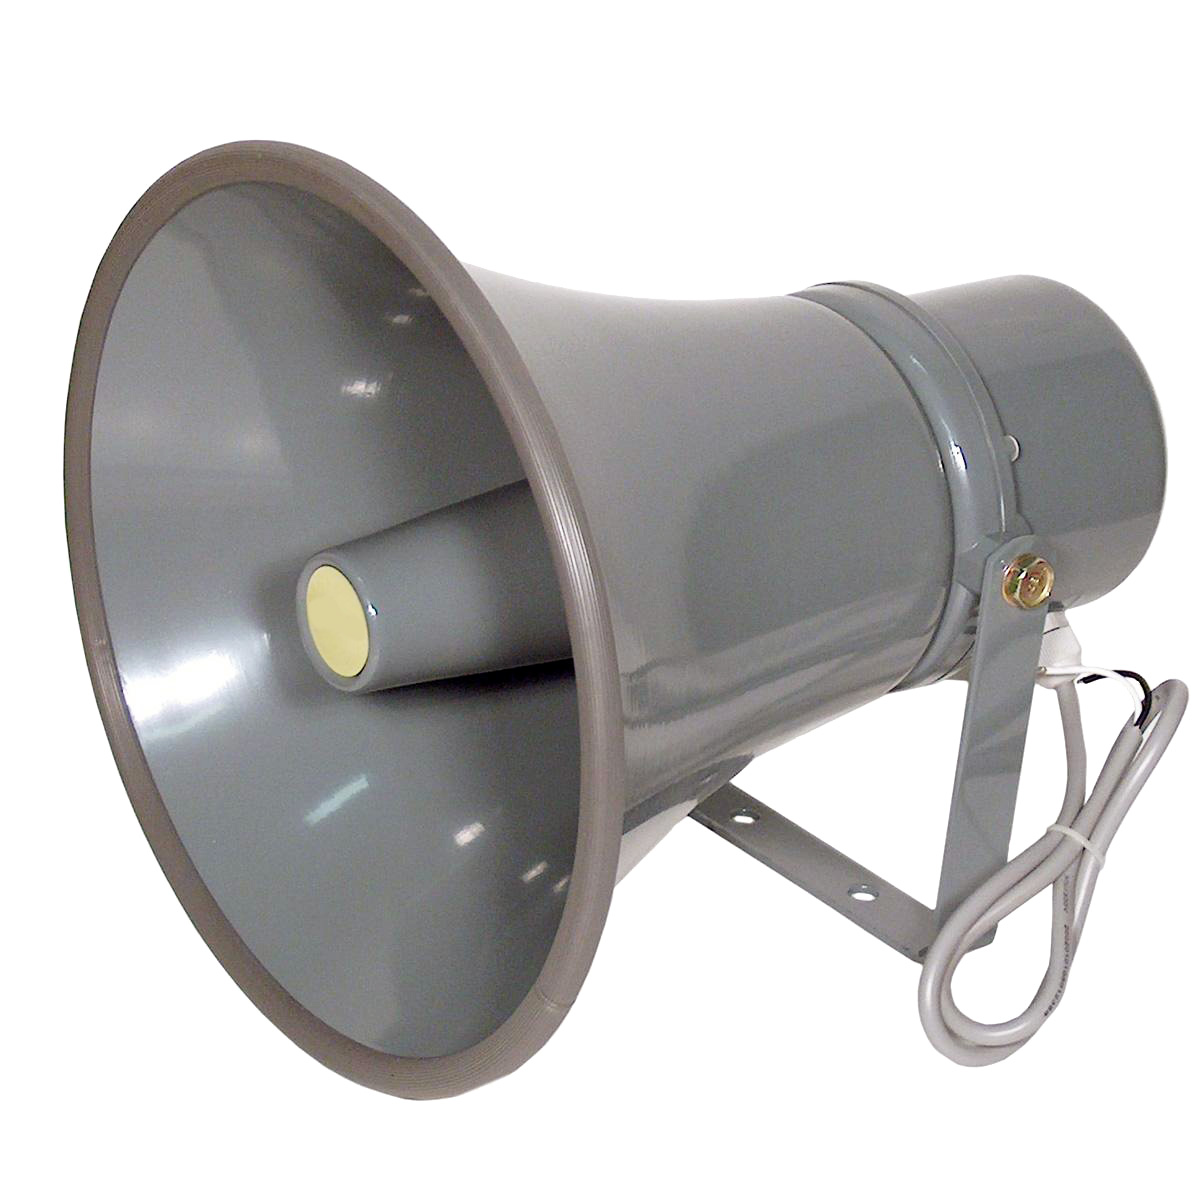 Speaker Outdoor PA Trumpet Horn Loud Speaker 10 diameter  ~ Spülbecken Outdoor